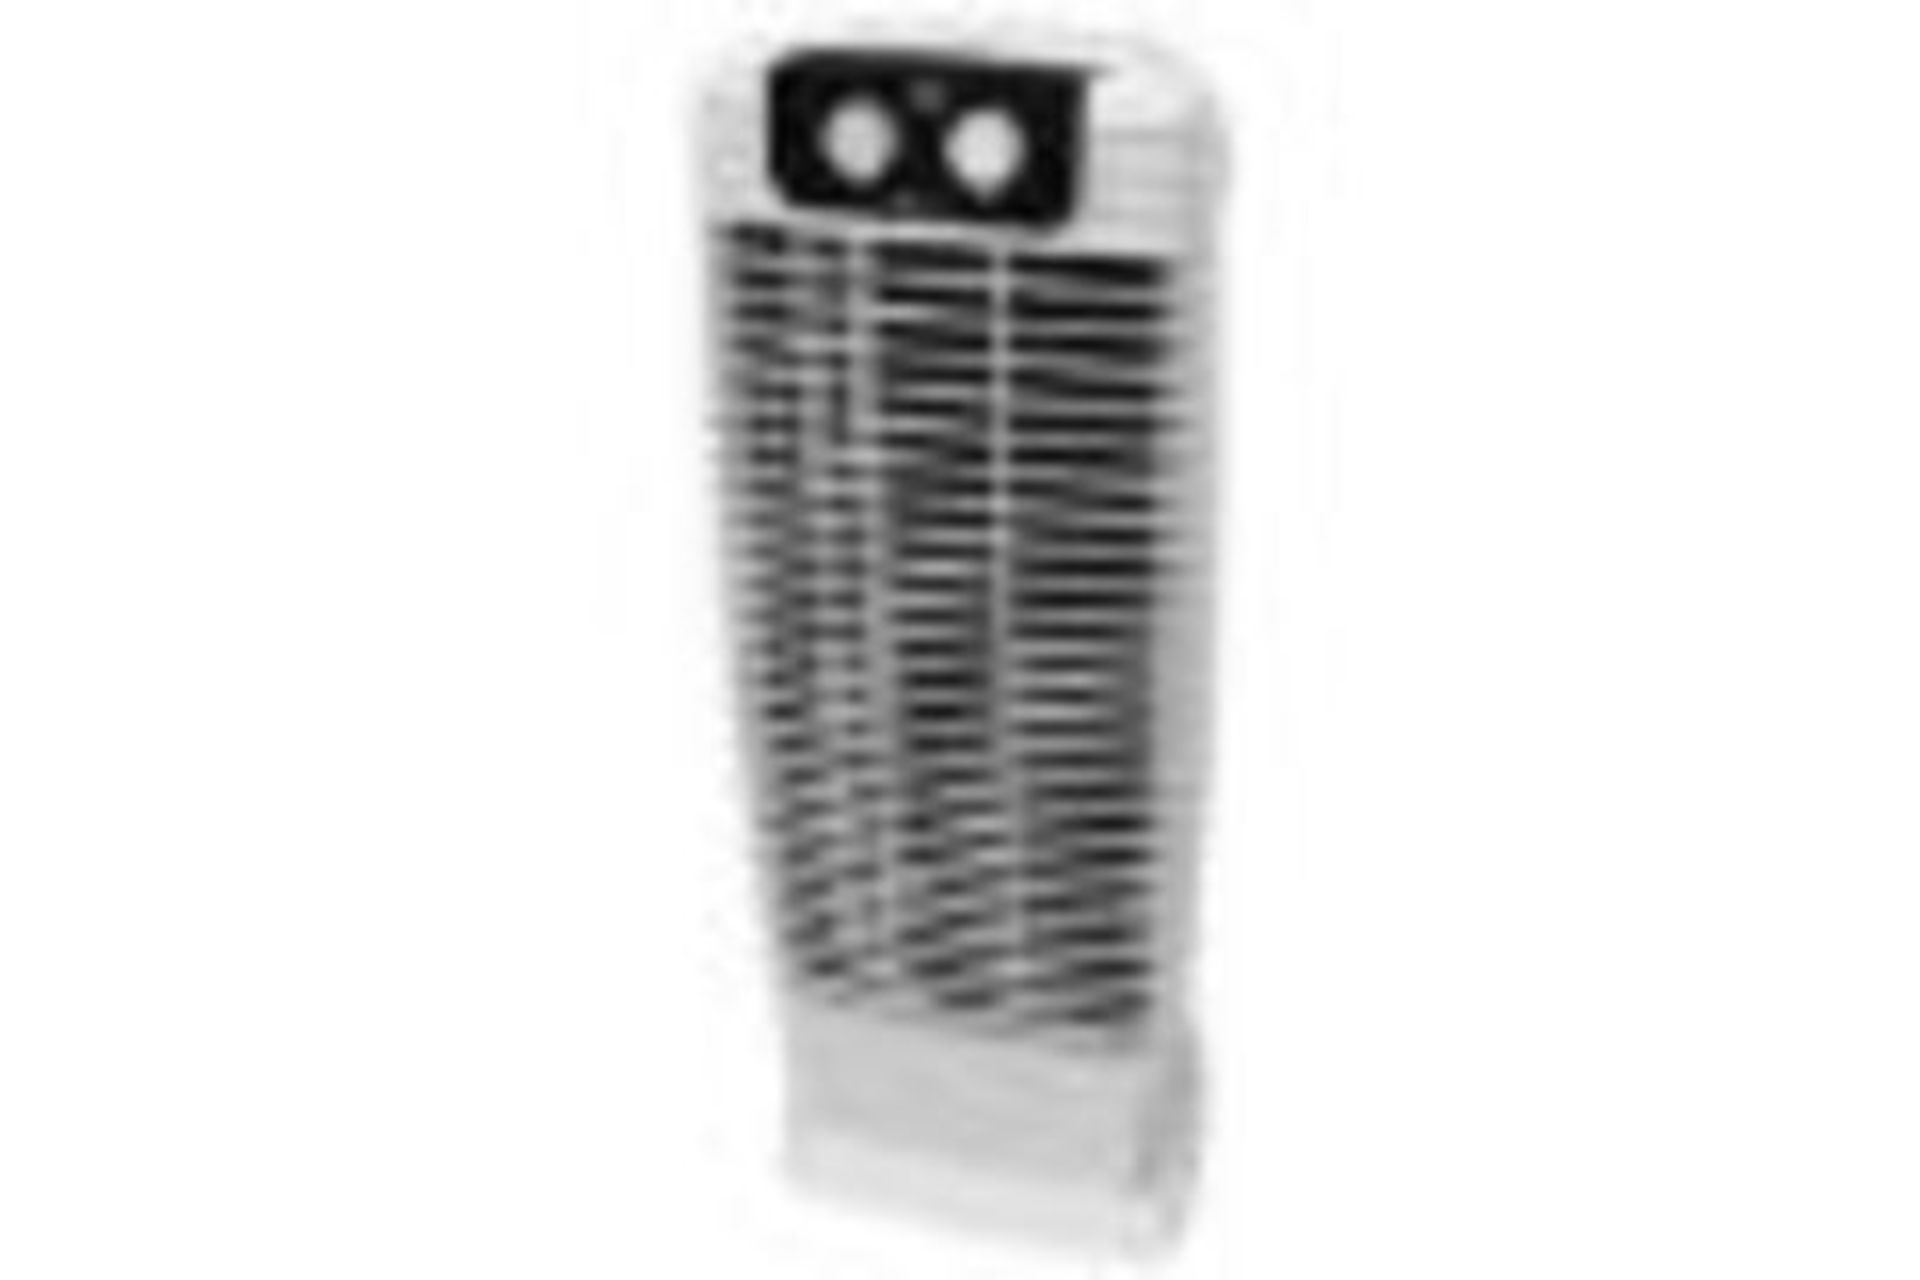 RRP £750 Pallet To Contain 15 Boxed Brand New Kg Master Flow Tower Fan (Pictures For Illustration